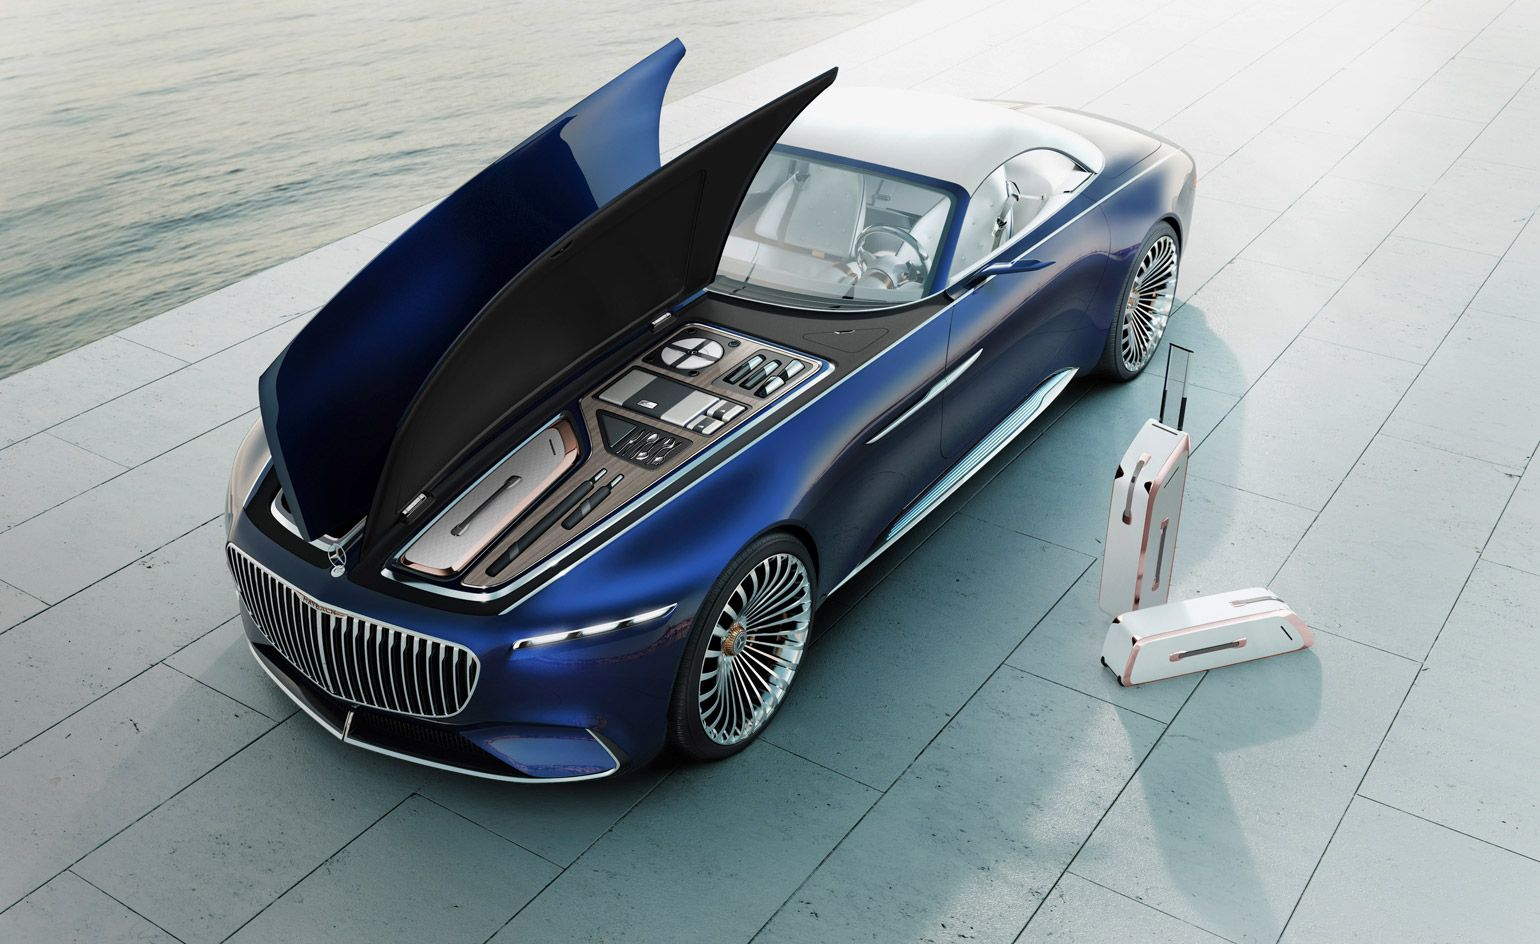 The New Reality Mercedes Maybach Unveils The Super Luxury Electric Car Of Tomorrow S World Mercedes Maybach Mercedes Benz Maybach Maybach